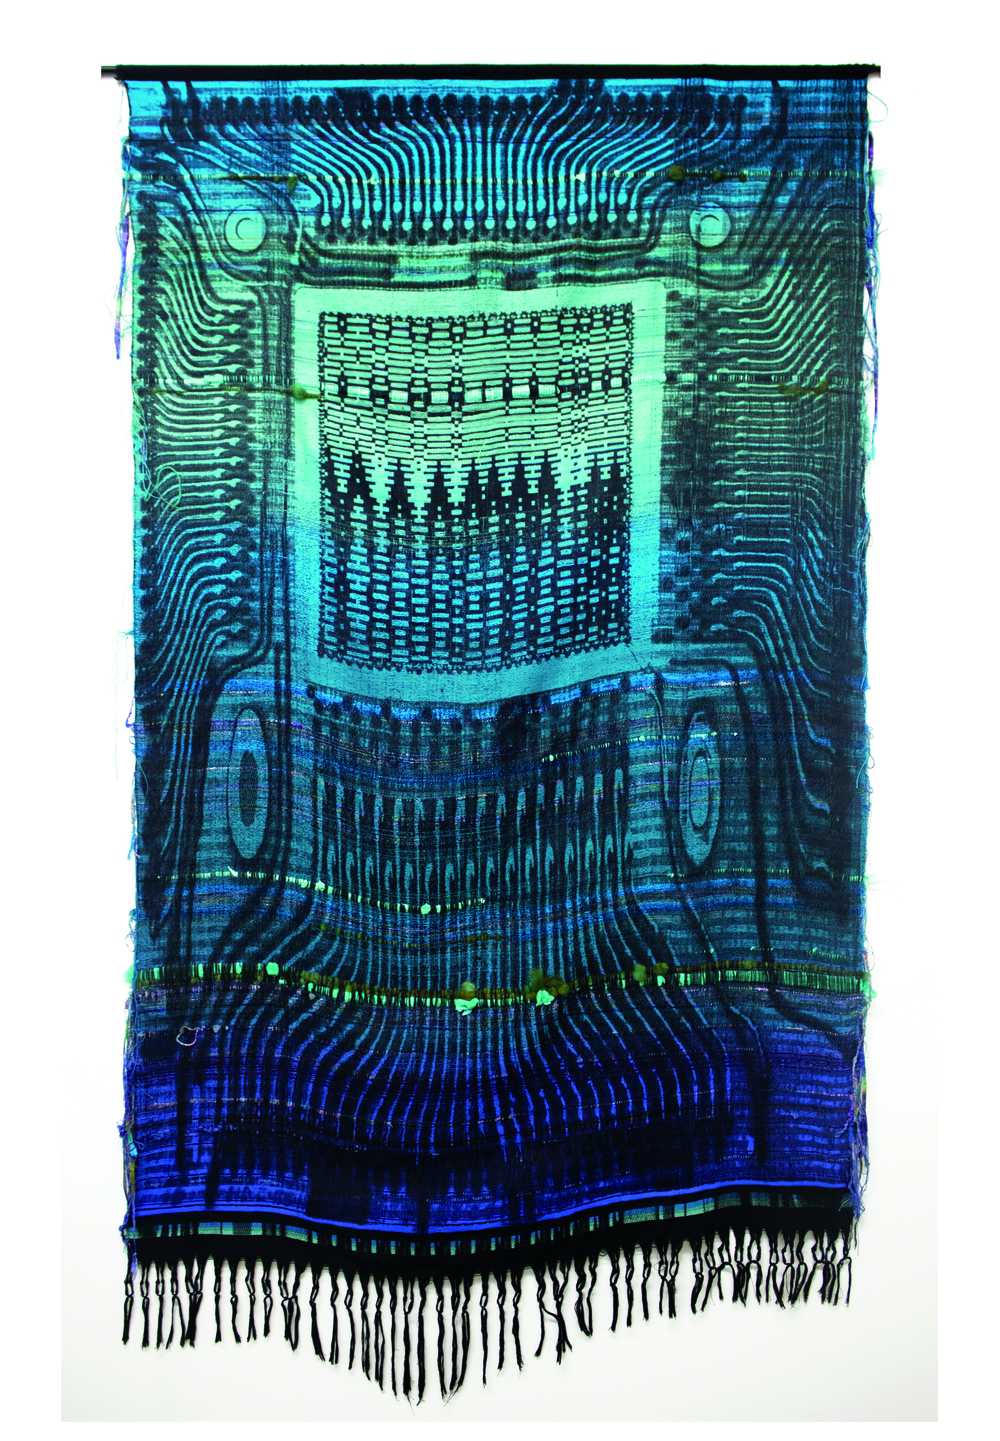 Robin Kang, Phantasmatic Data Dawn, 2015, Hand jacquard woven cotton, wool, synthetic fiber, plastic, metal rod, 56 x 98 in